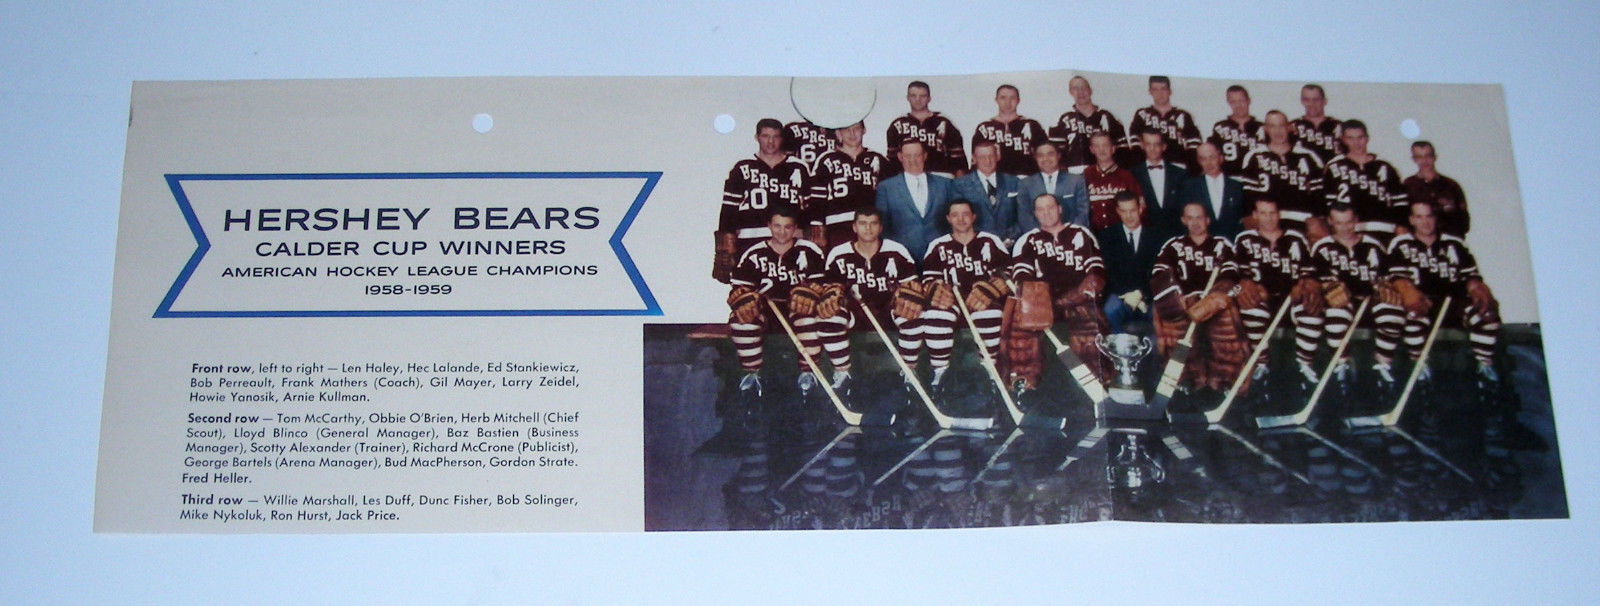 1958-59 HERSHEY BEARS Calder Cup winners American Hockey league champions